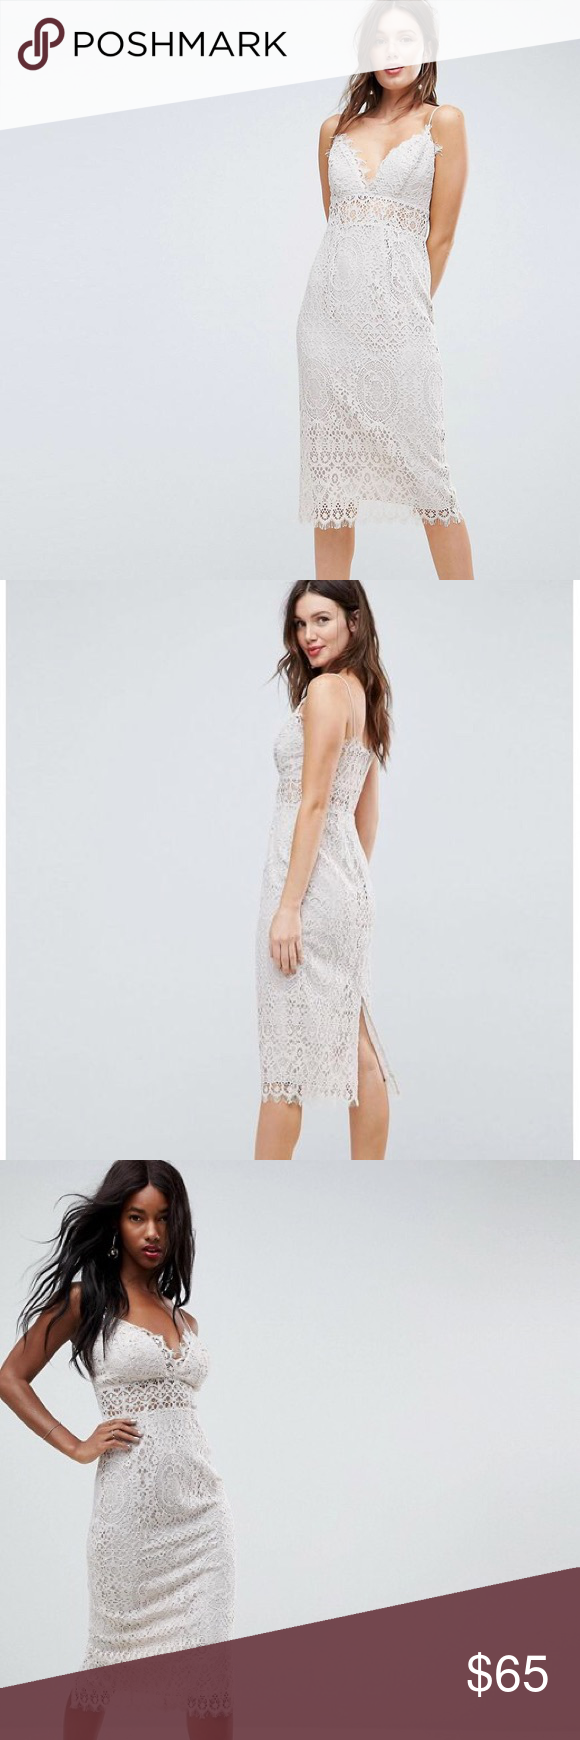 7c01801bef29 ASOS Lace Cami Midi Pencil Dress Dress by ASOS Collection. In perfect  condition, brand